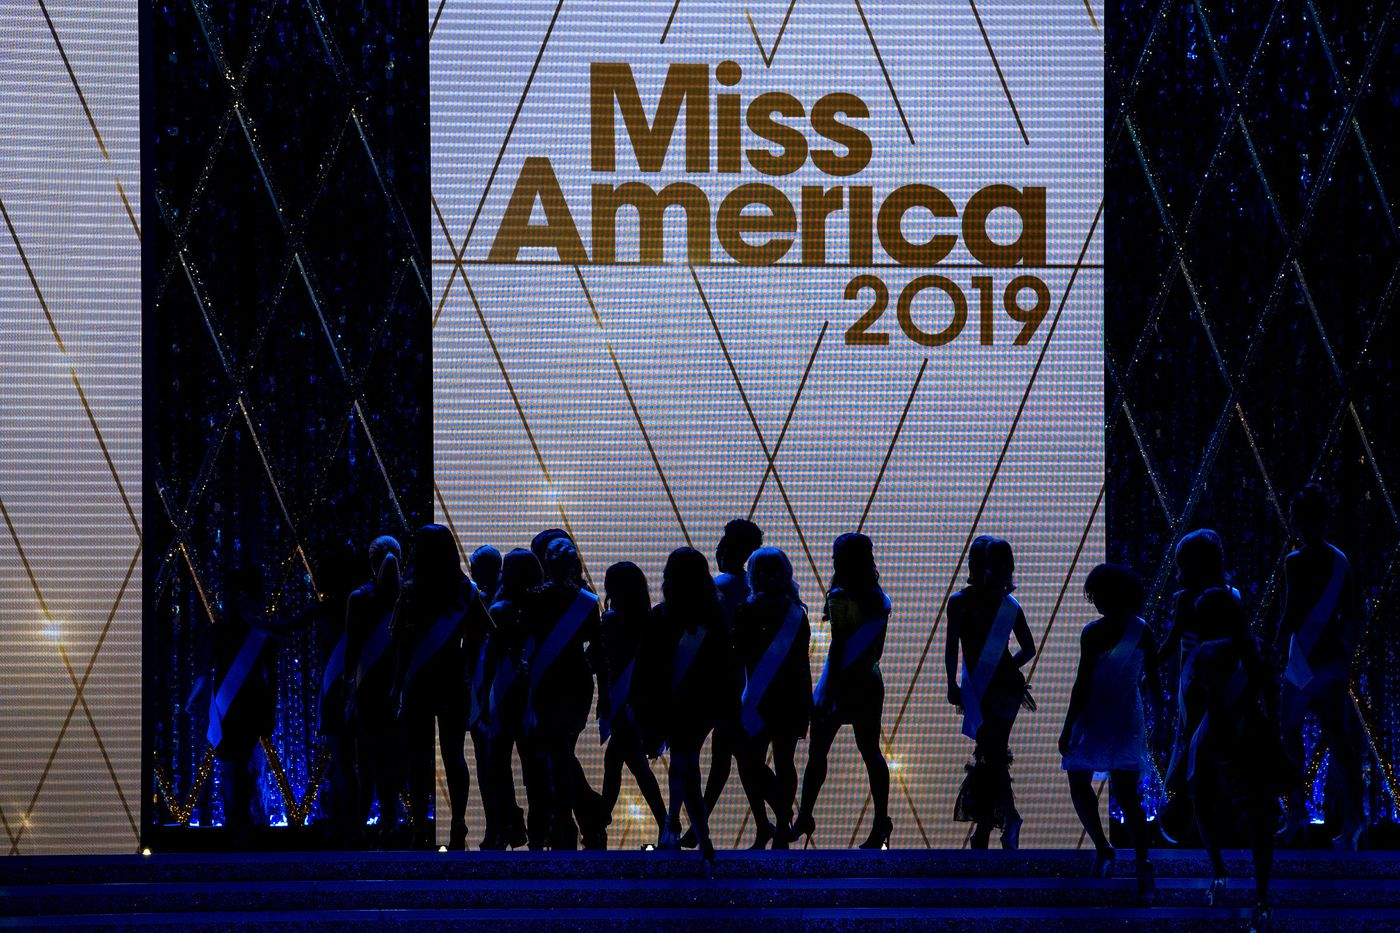 Tropical Storm Florence approaches East Coast, Miss America controversy continues | Morning Newsletter